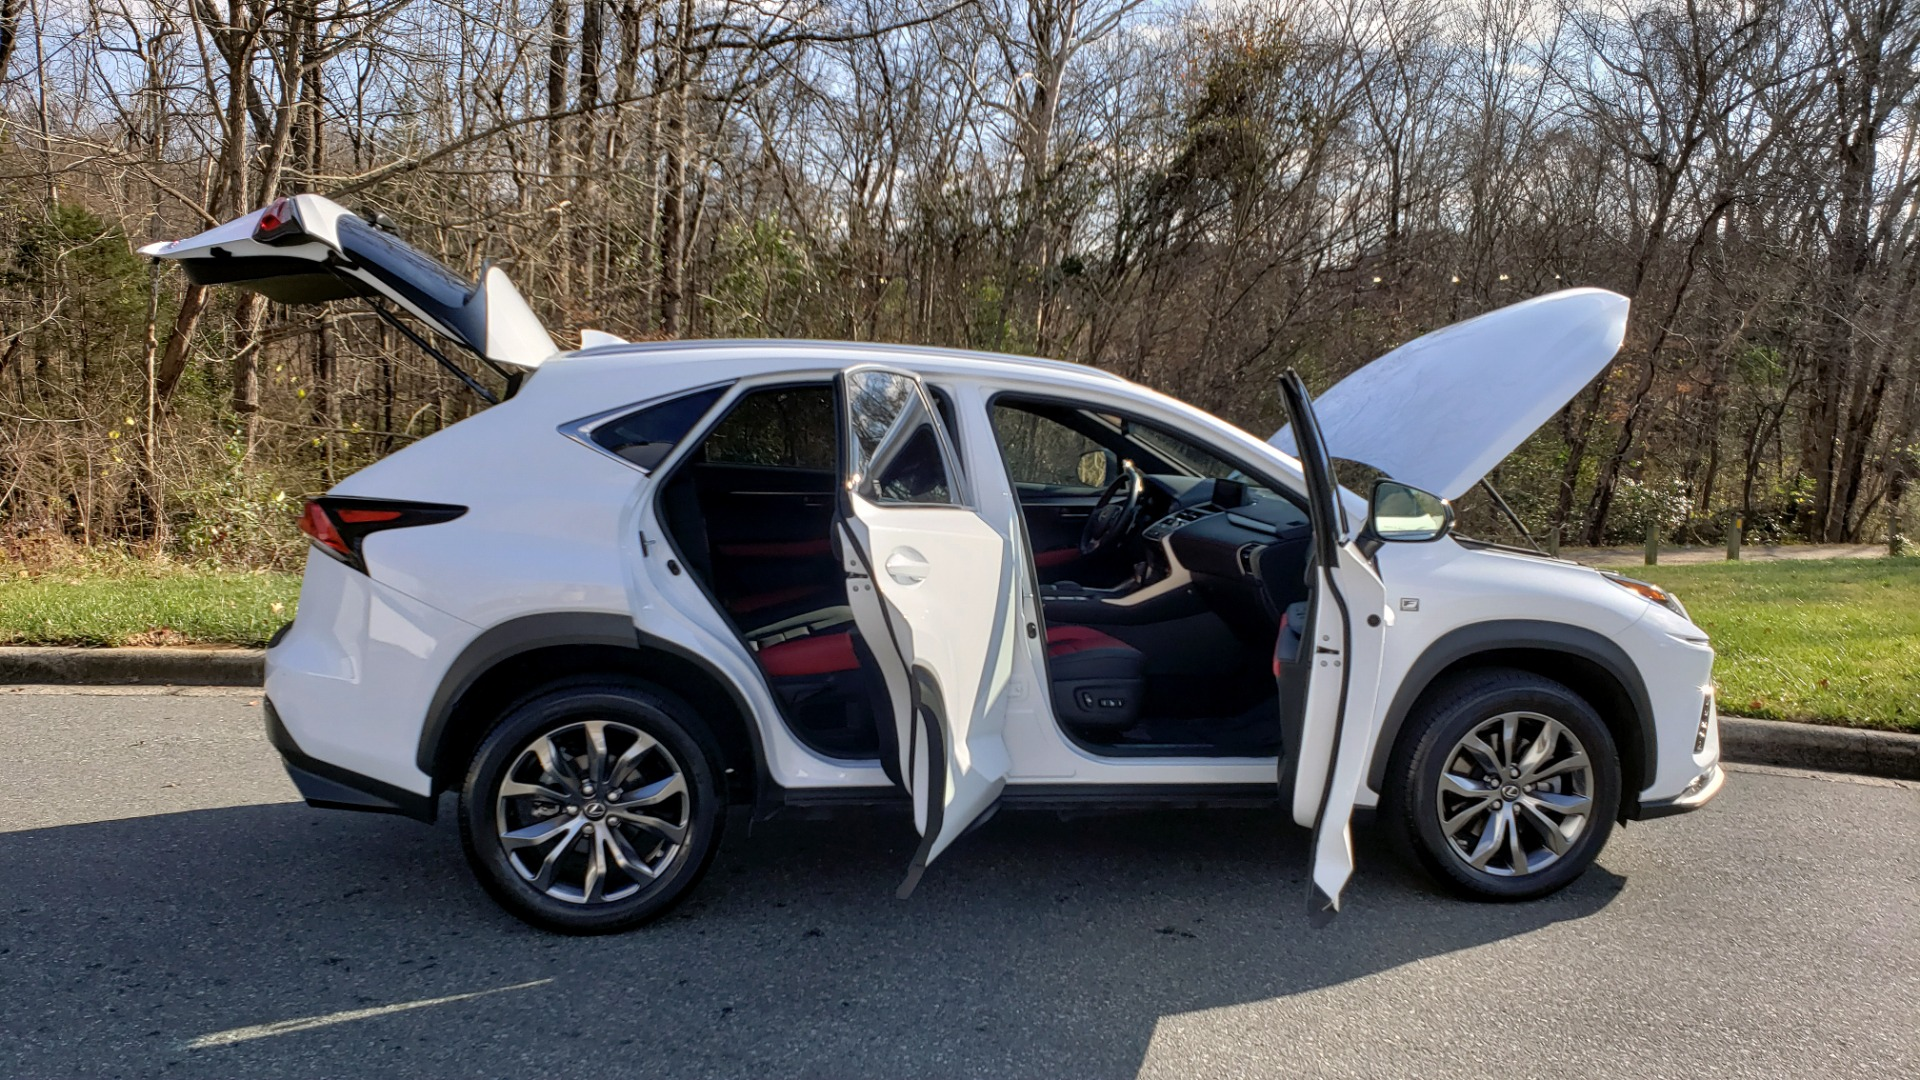 Used 2019 Lexus NX 300 F-SPORT / 2.0L TURBO / LEATHER / 18IN WHEELS / REARVIEW for sale Sold at Formula Imports in Charlotte NC 28227 10